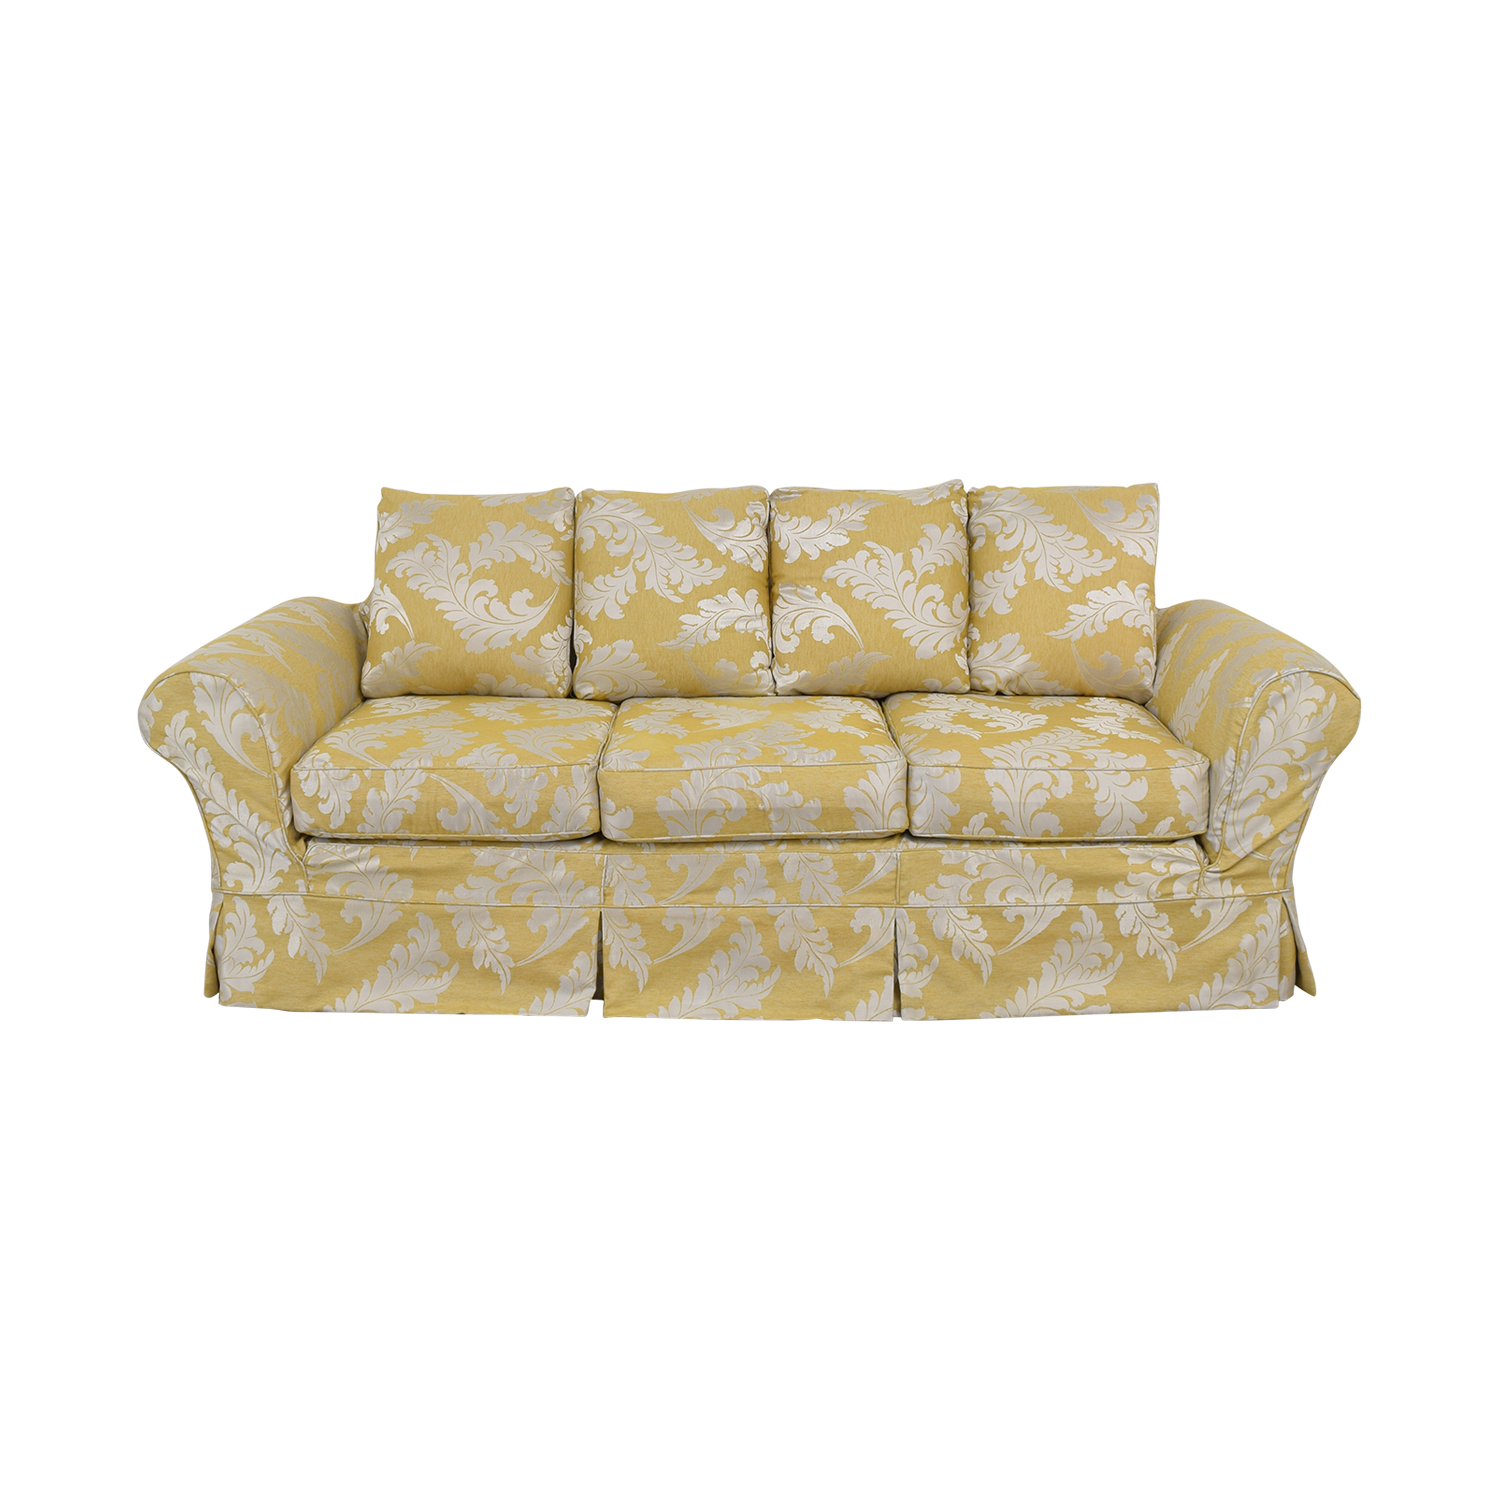 Ethan Allen Ethan Allen Three Cushion Sofa nj